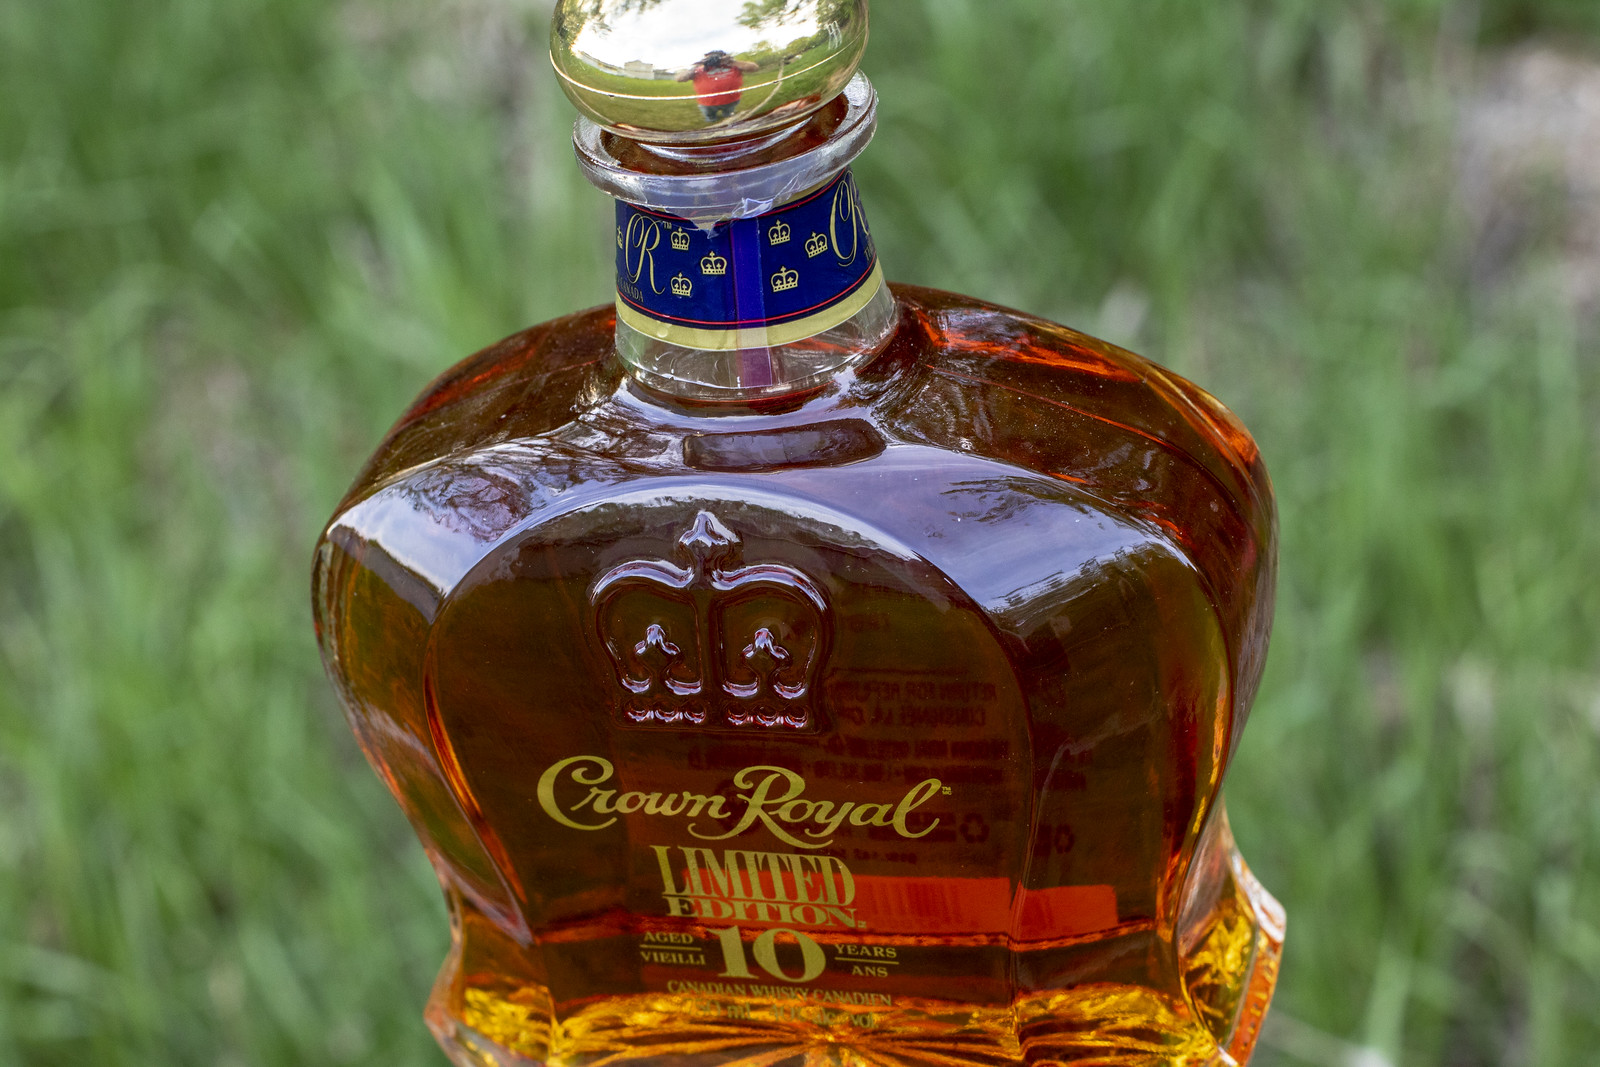 Crown Royal Limited Edition (Aged 10 Years)